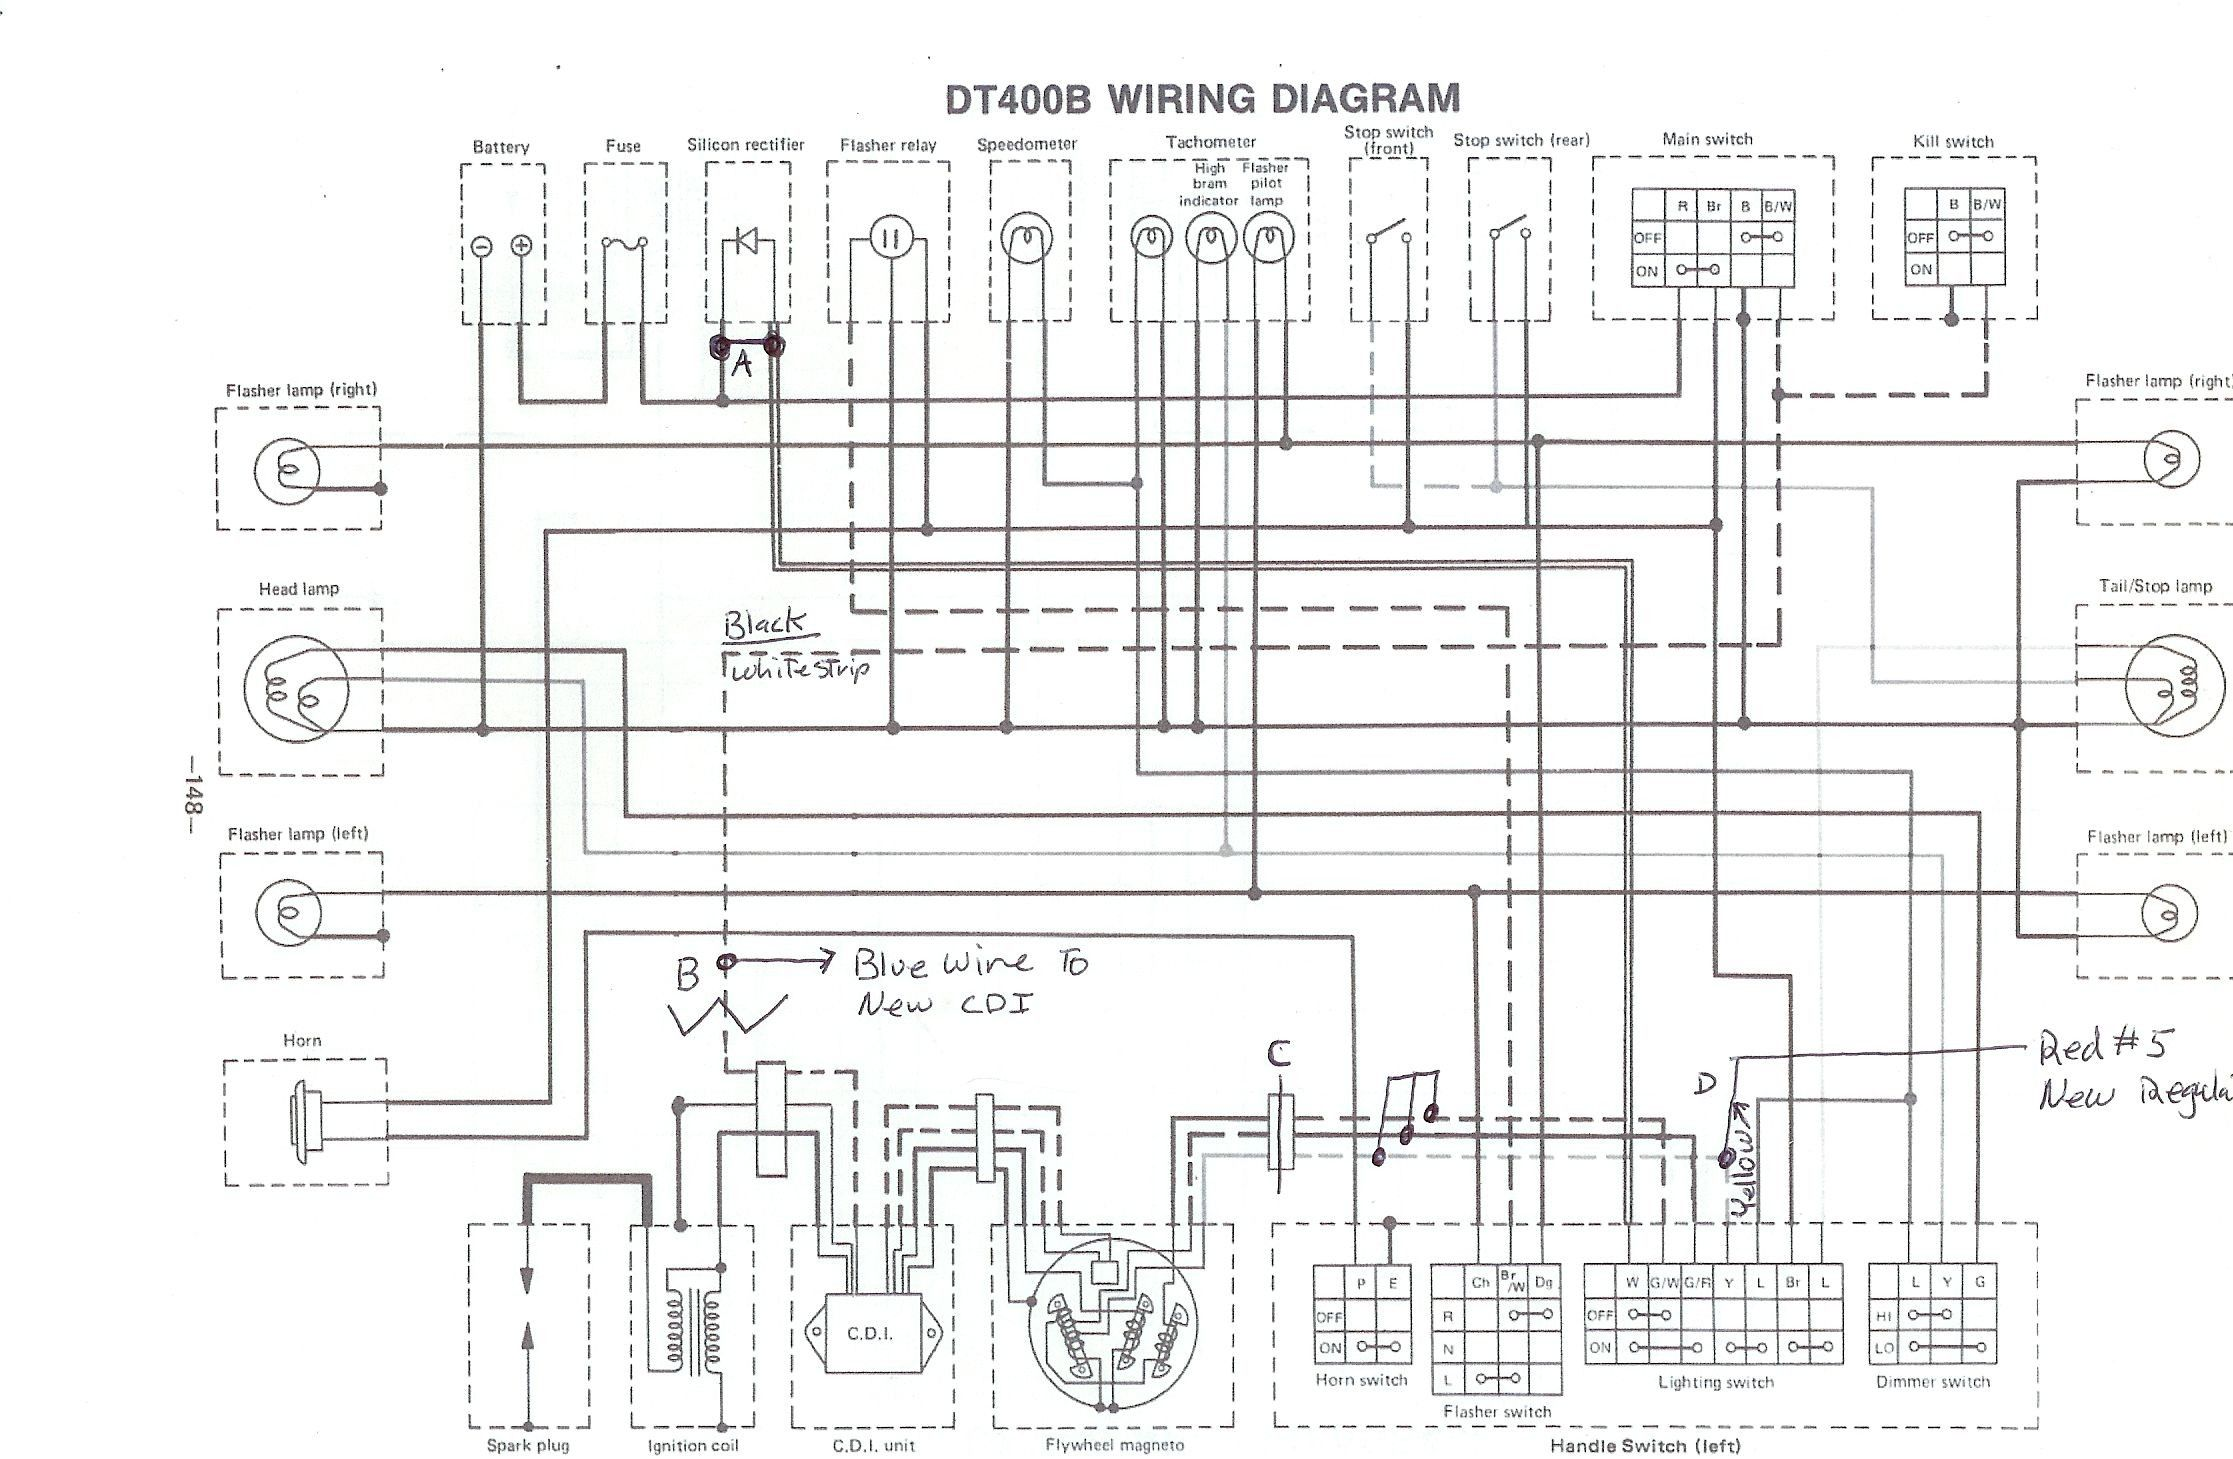 1997 Yamaha Snowmobile Wiring Diagram Wiring Diagrams Note Window A Note Window A Massimocariello It